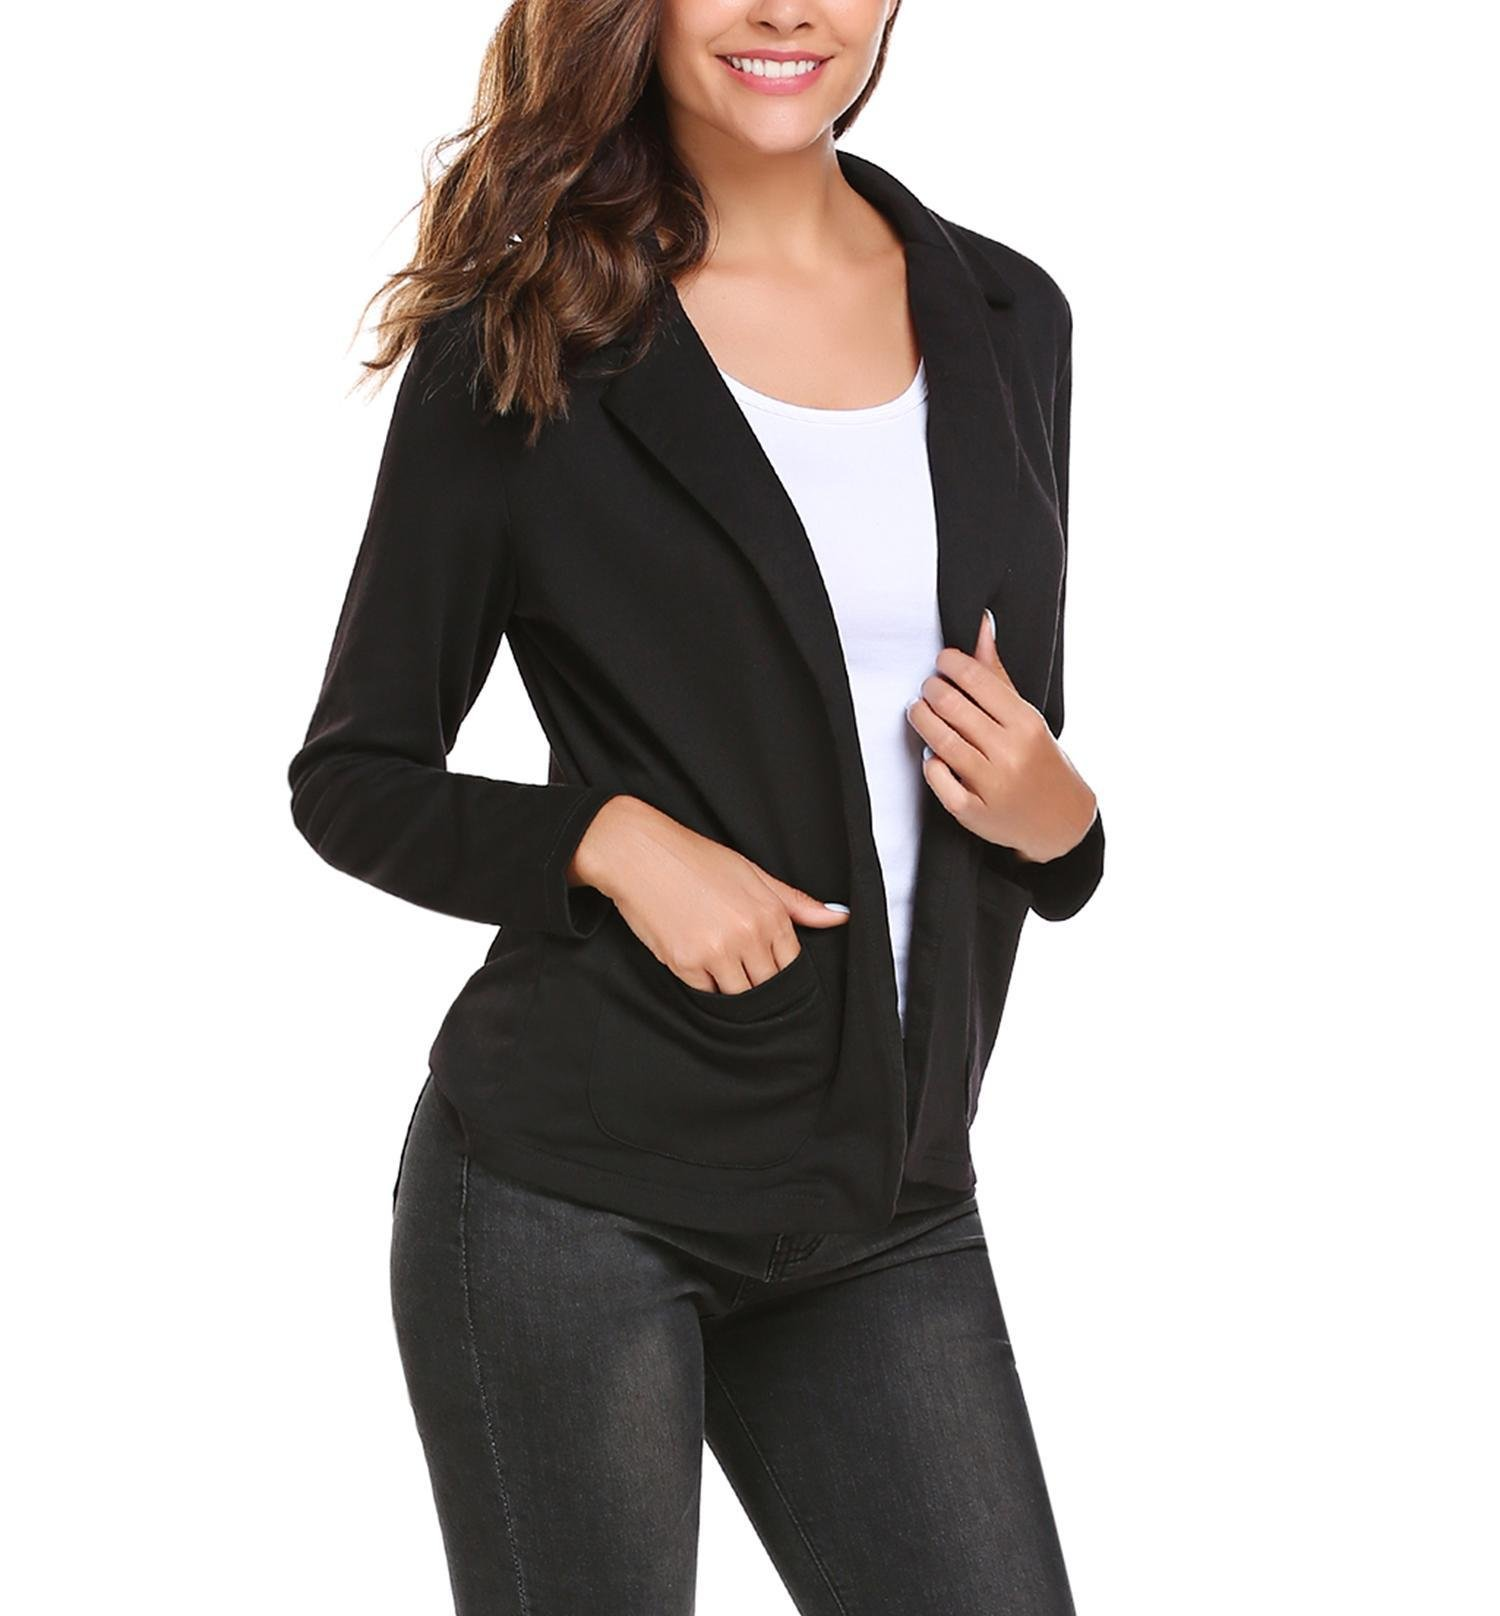 ThinIce Women's Lightweight Long Sleeve Open-Front Blazer Wear To Work Tops Black XXXL